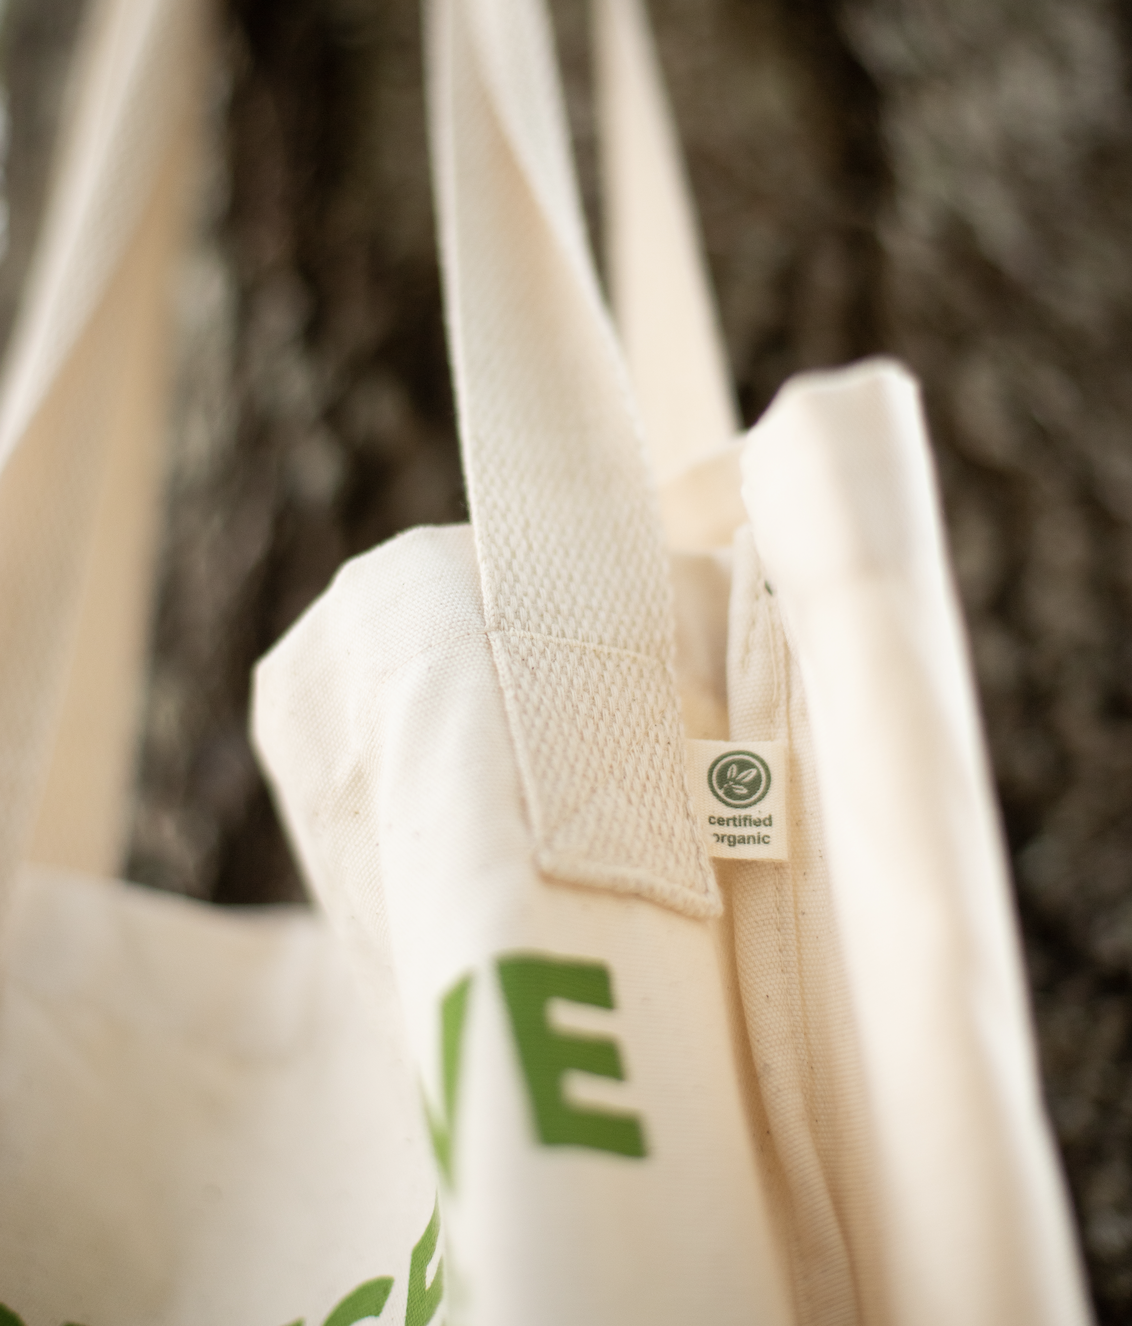 An eco-friendly tote bag hangs from a tree.